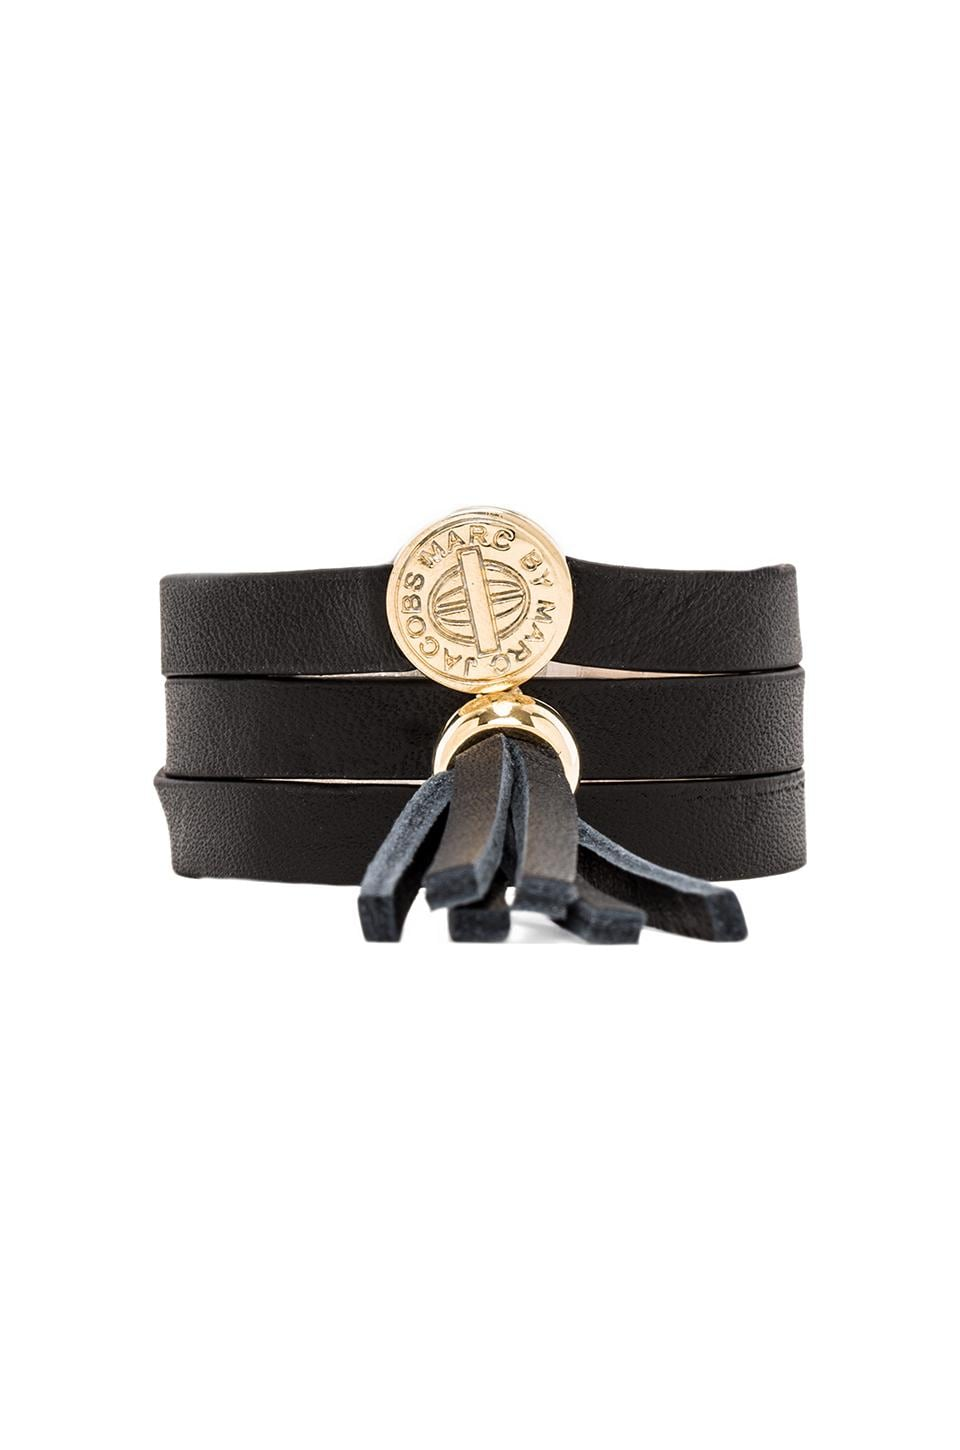 Marc by Marc Jacobs Triple Wrap Leather Bracelet en Black (Oro)